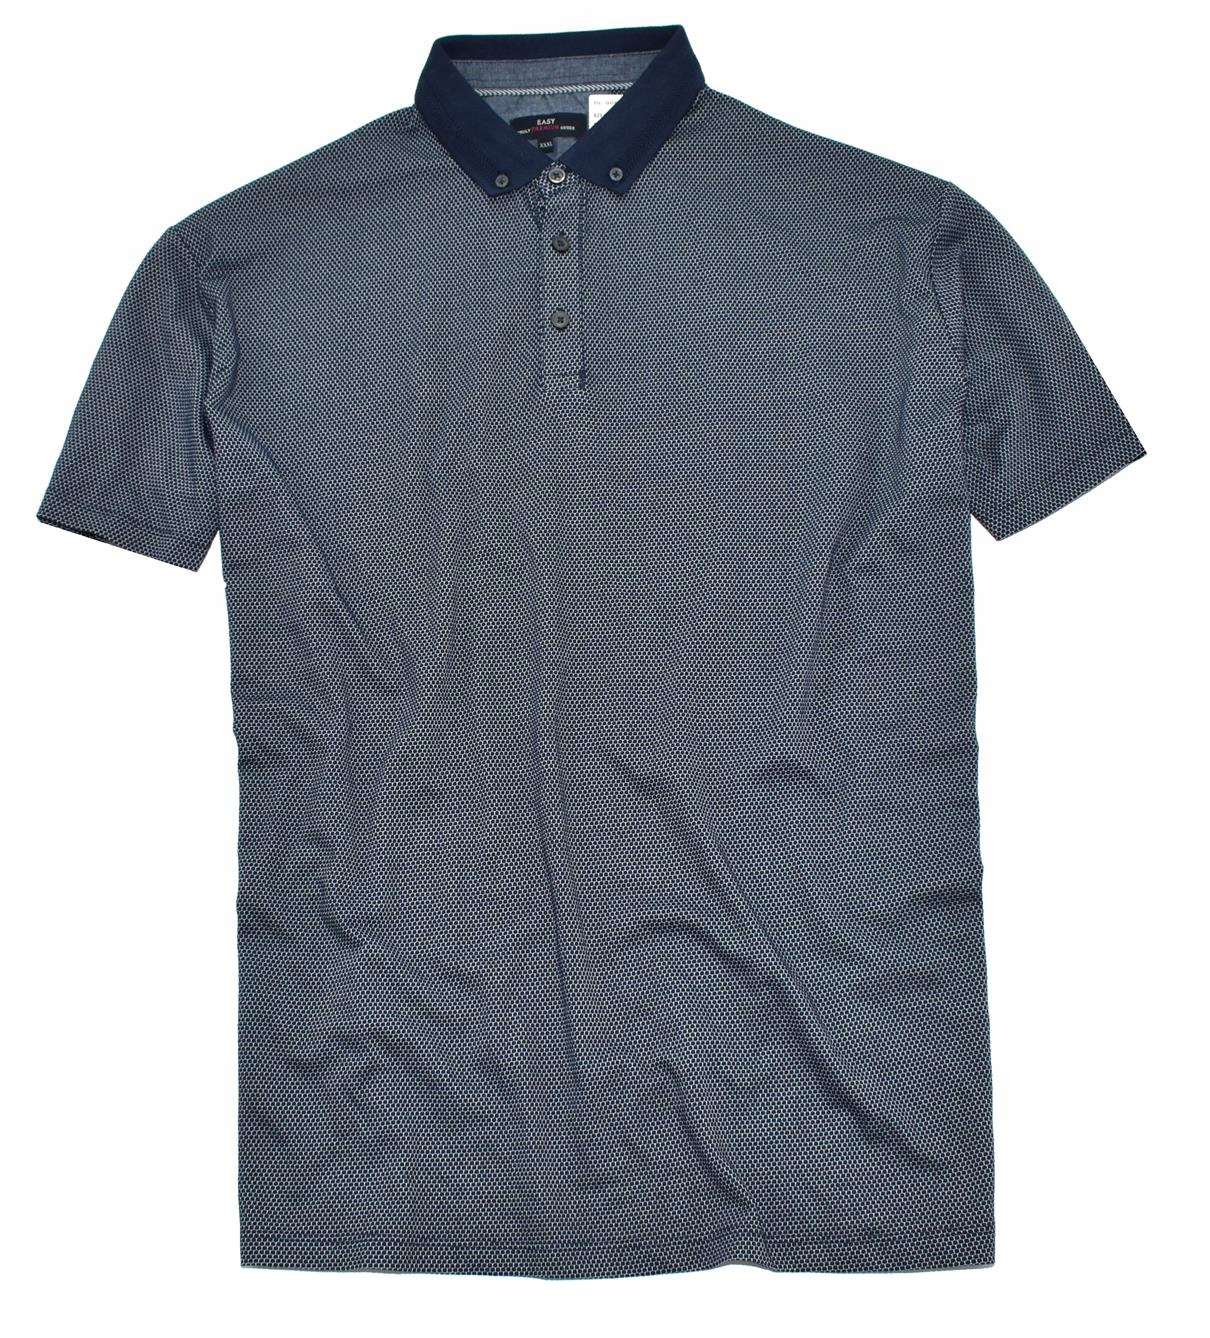 MM A100 EASY_TRENDY PREMIUM STYLE POLO_3XL